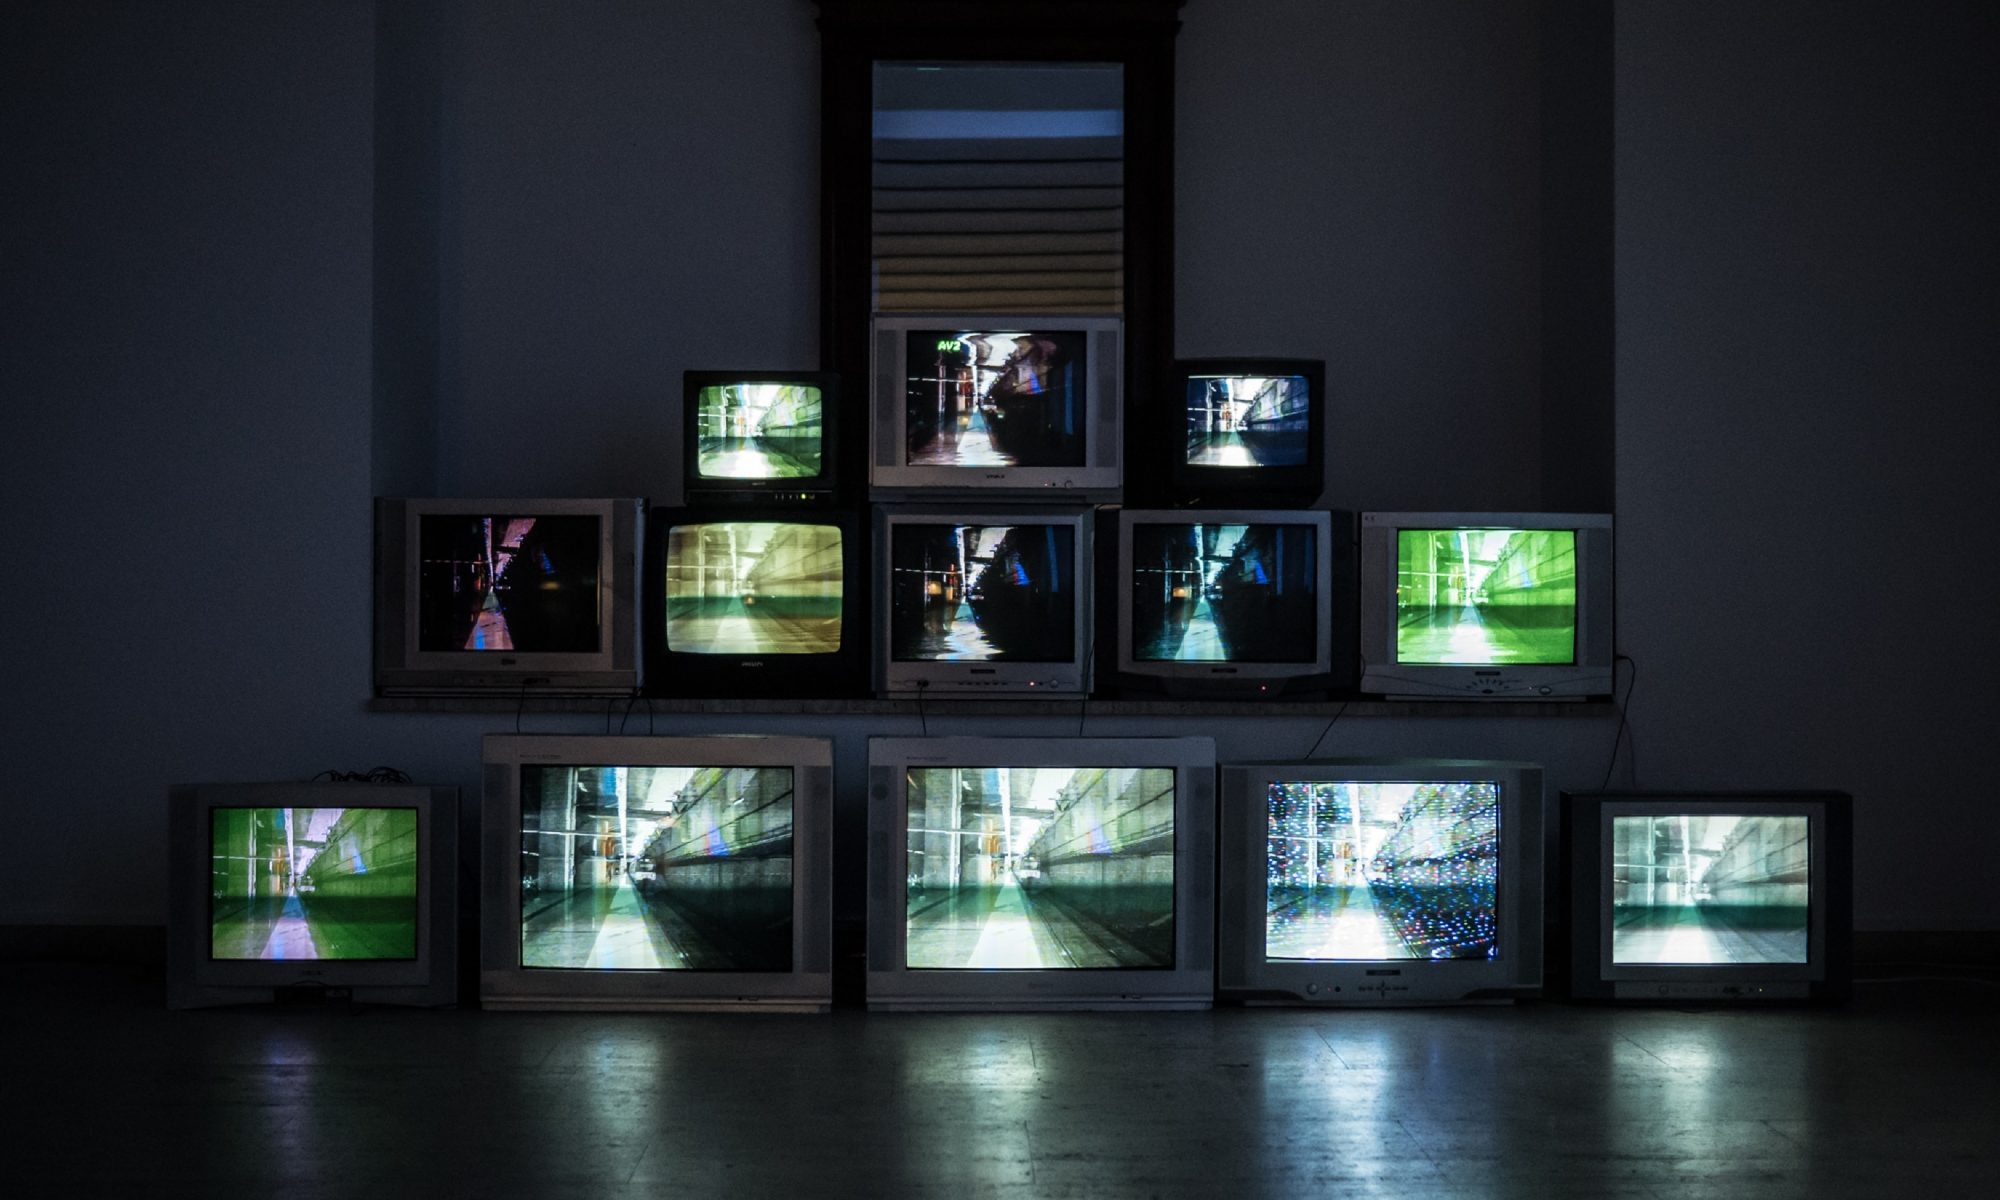 bank of televisions